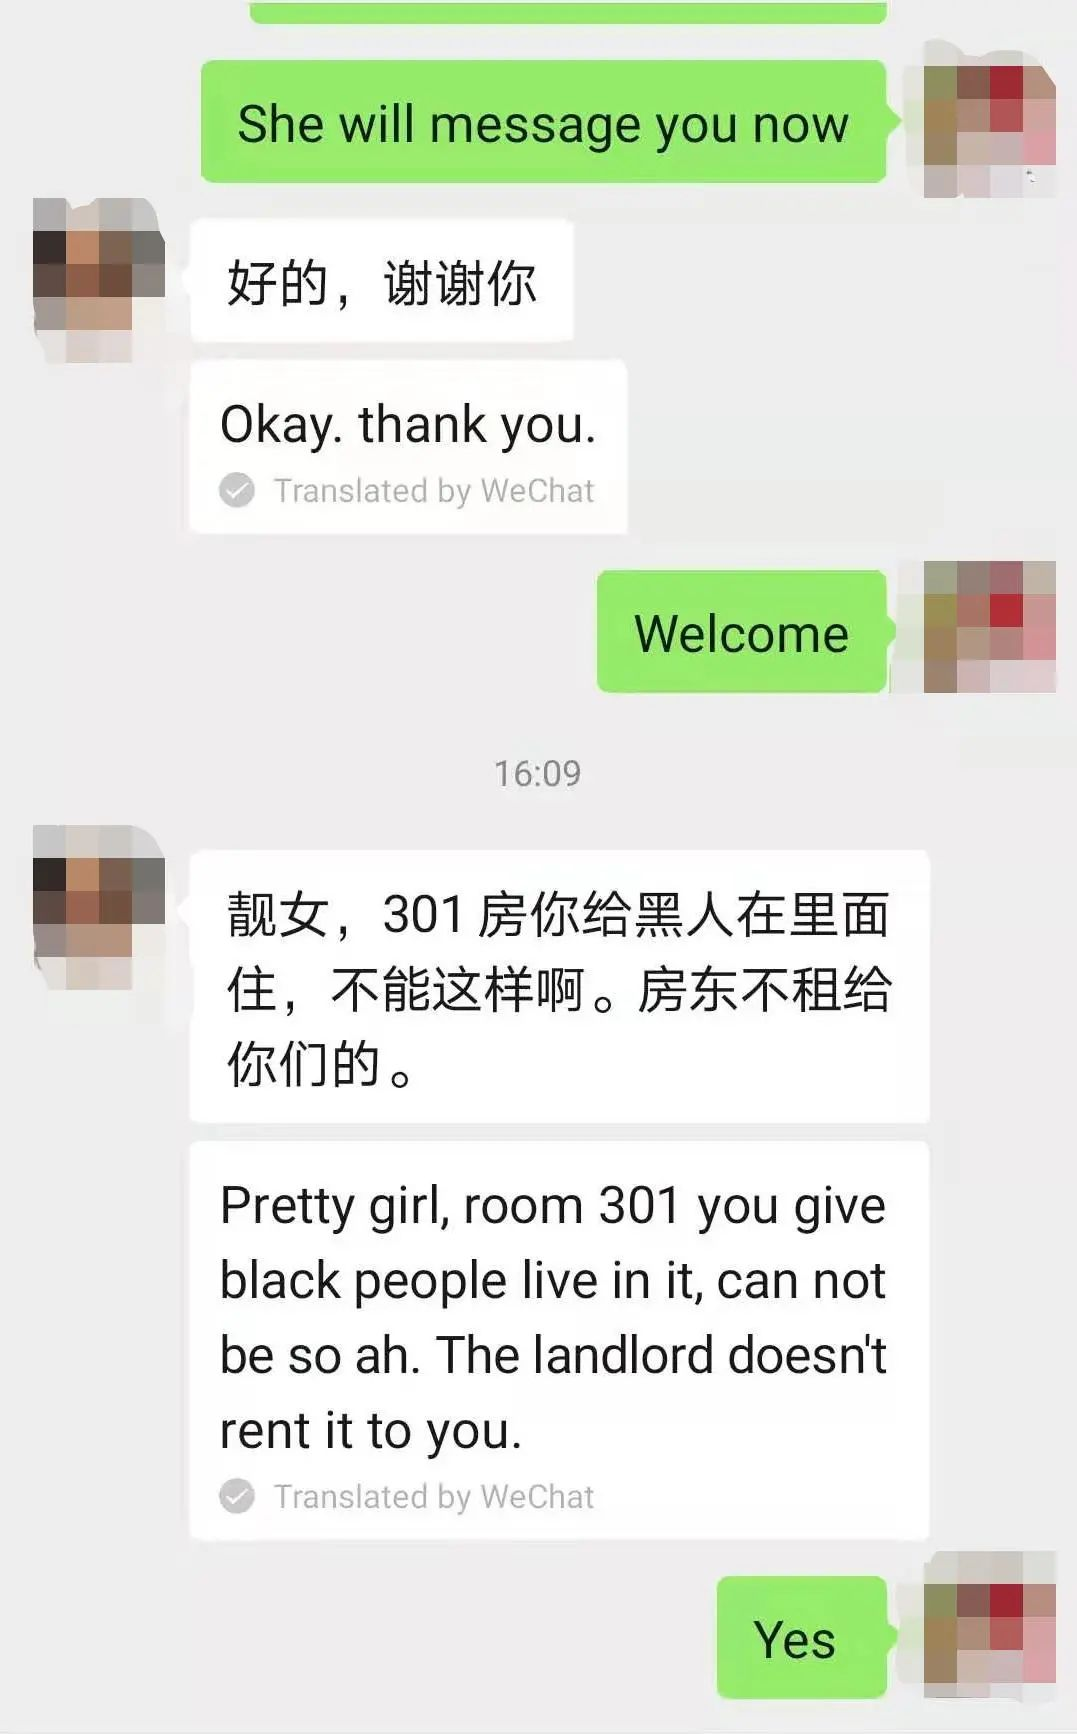 Black People Aren't Allowed To Live In This Apartment?